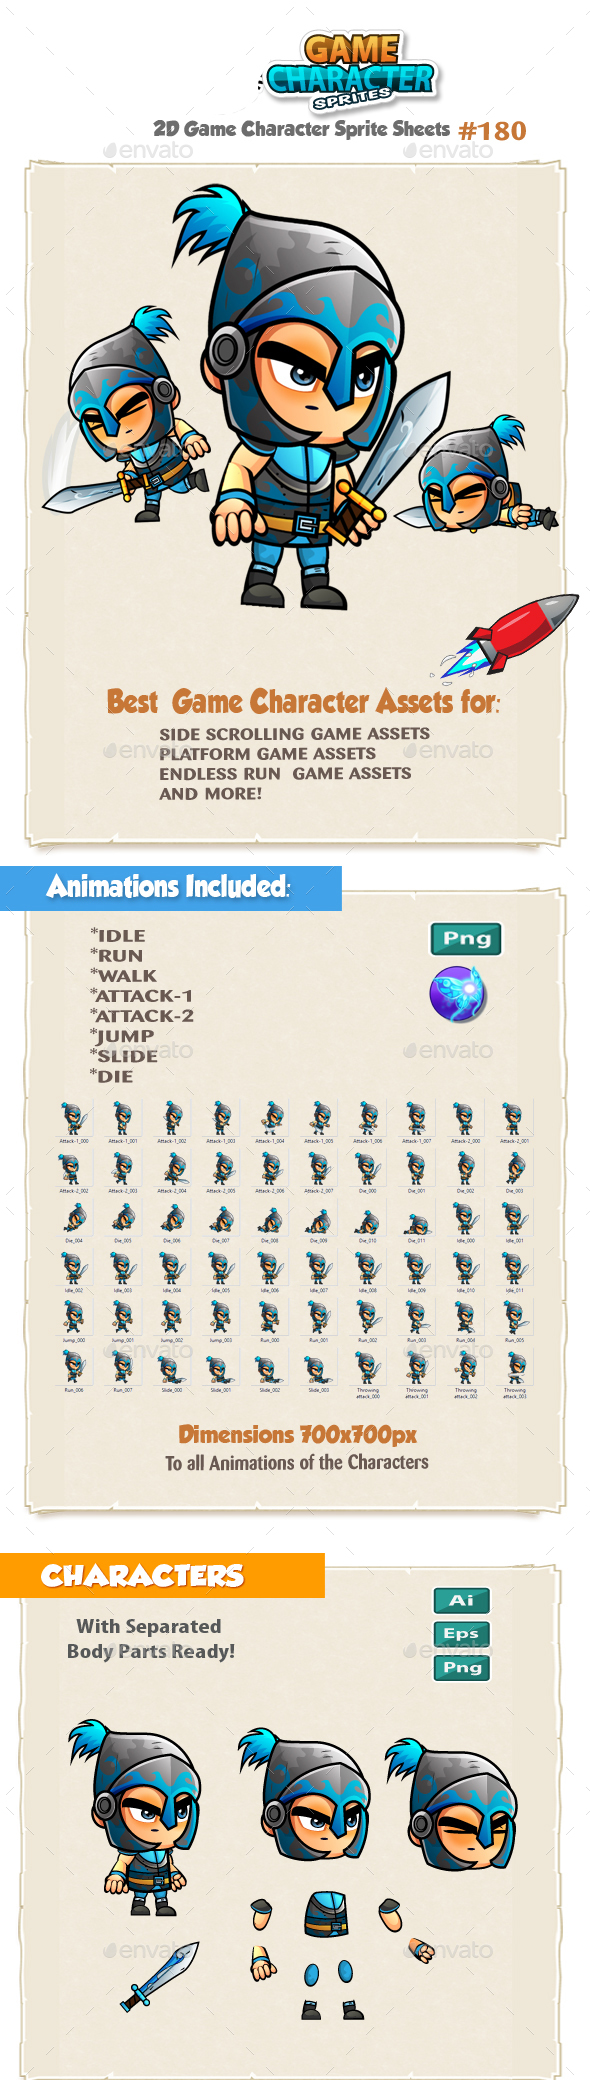 The Blue Knight 2D Game Character Sprites 180 - Sprites Game Assets